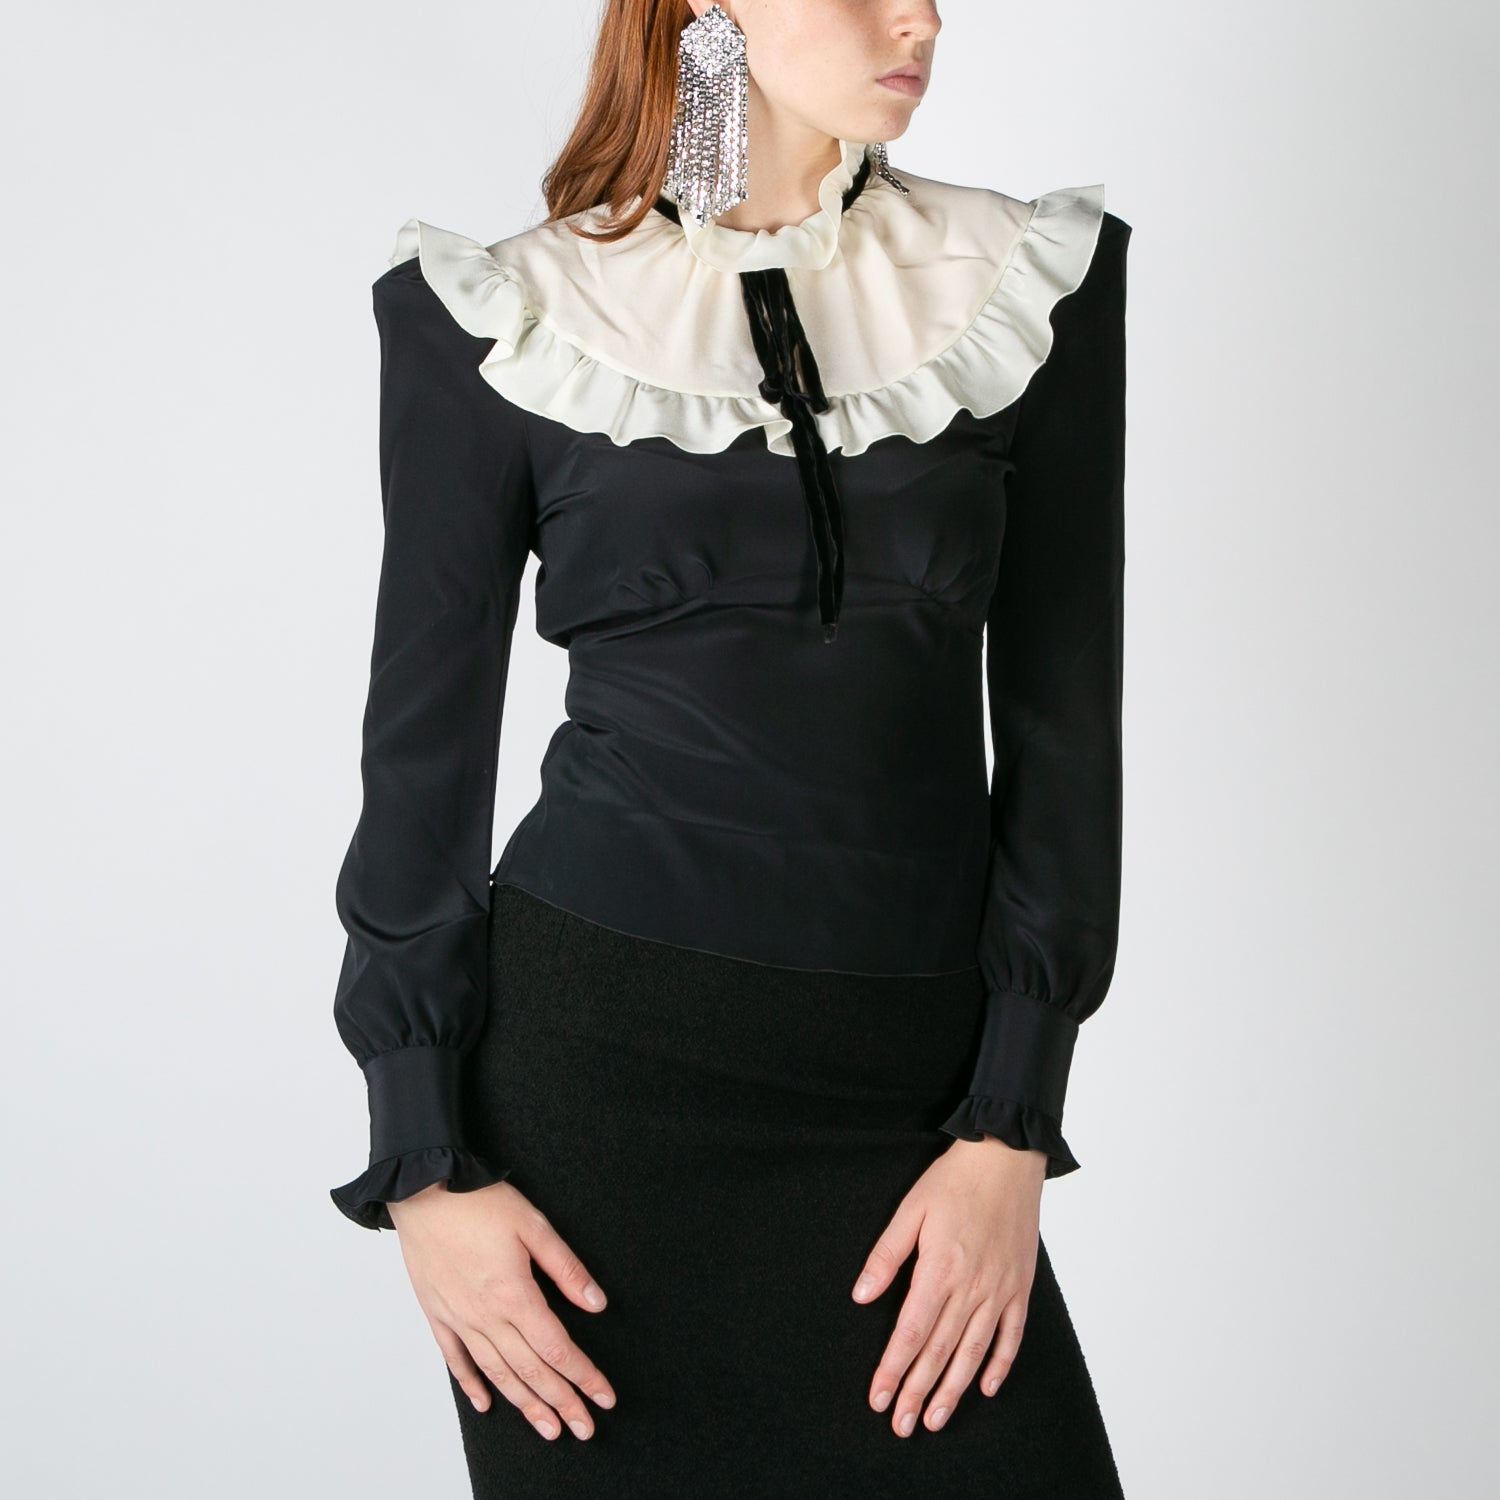 black silk long sleeve blouse with collar by Alessandra Rich at Secret Location